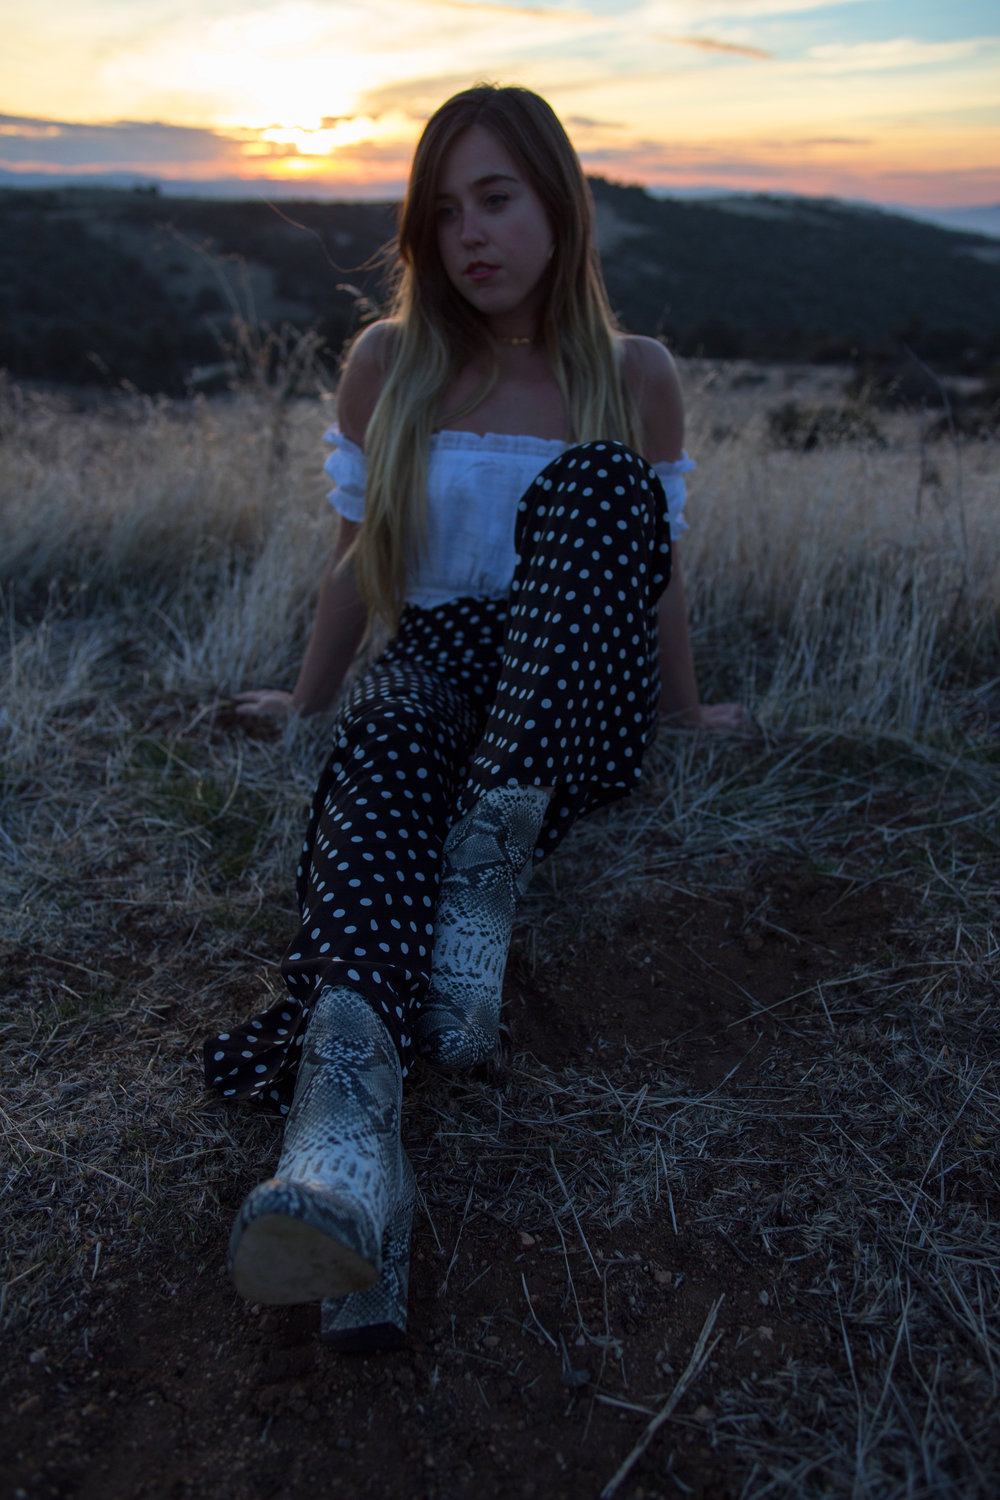 AstroBandit_Blackwater_Matisse_WildHoney_BlackPolkaDotPants_WhiteOffTheShoulderTop_SnakeskinBoots_6.jpg